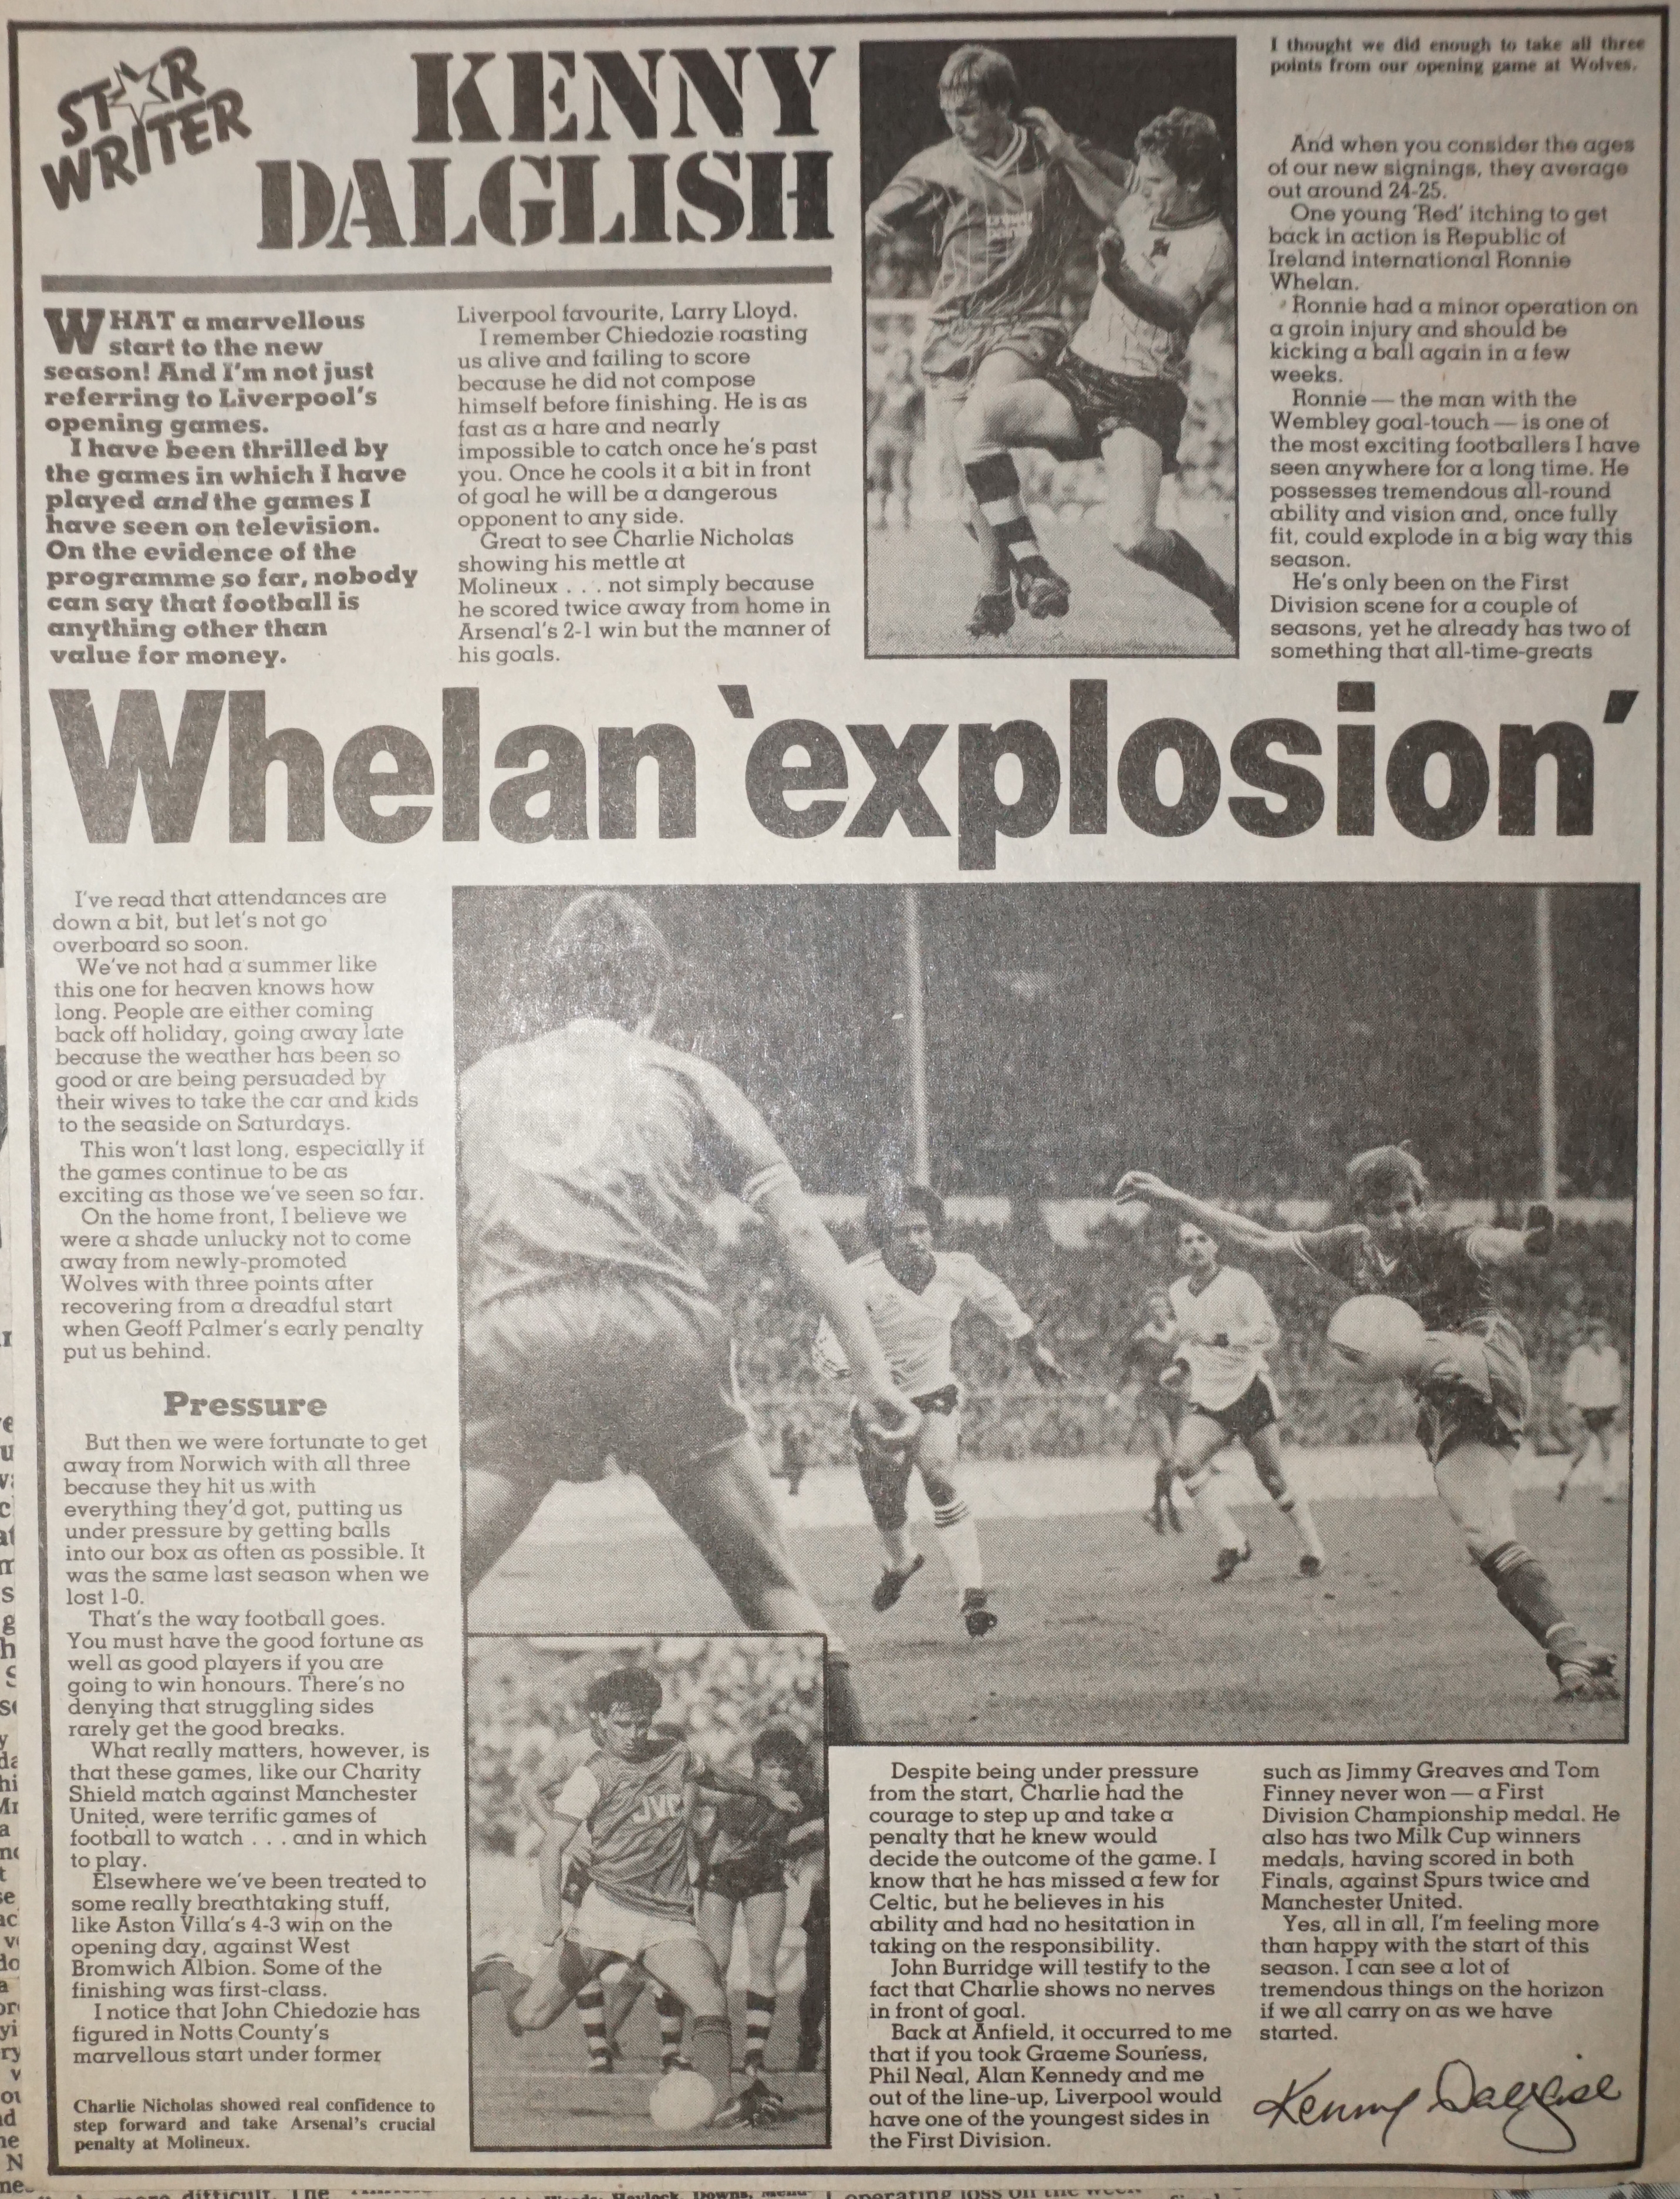 Whelan explosion by Kenny Dalglish - August 1983